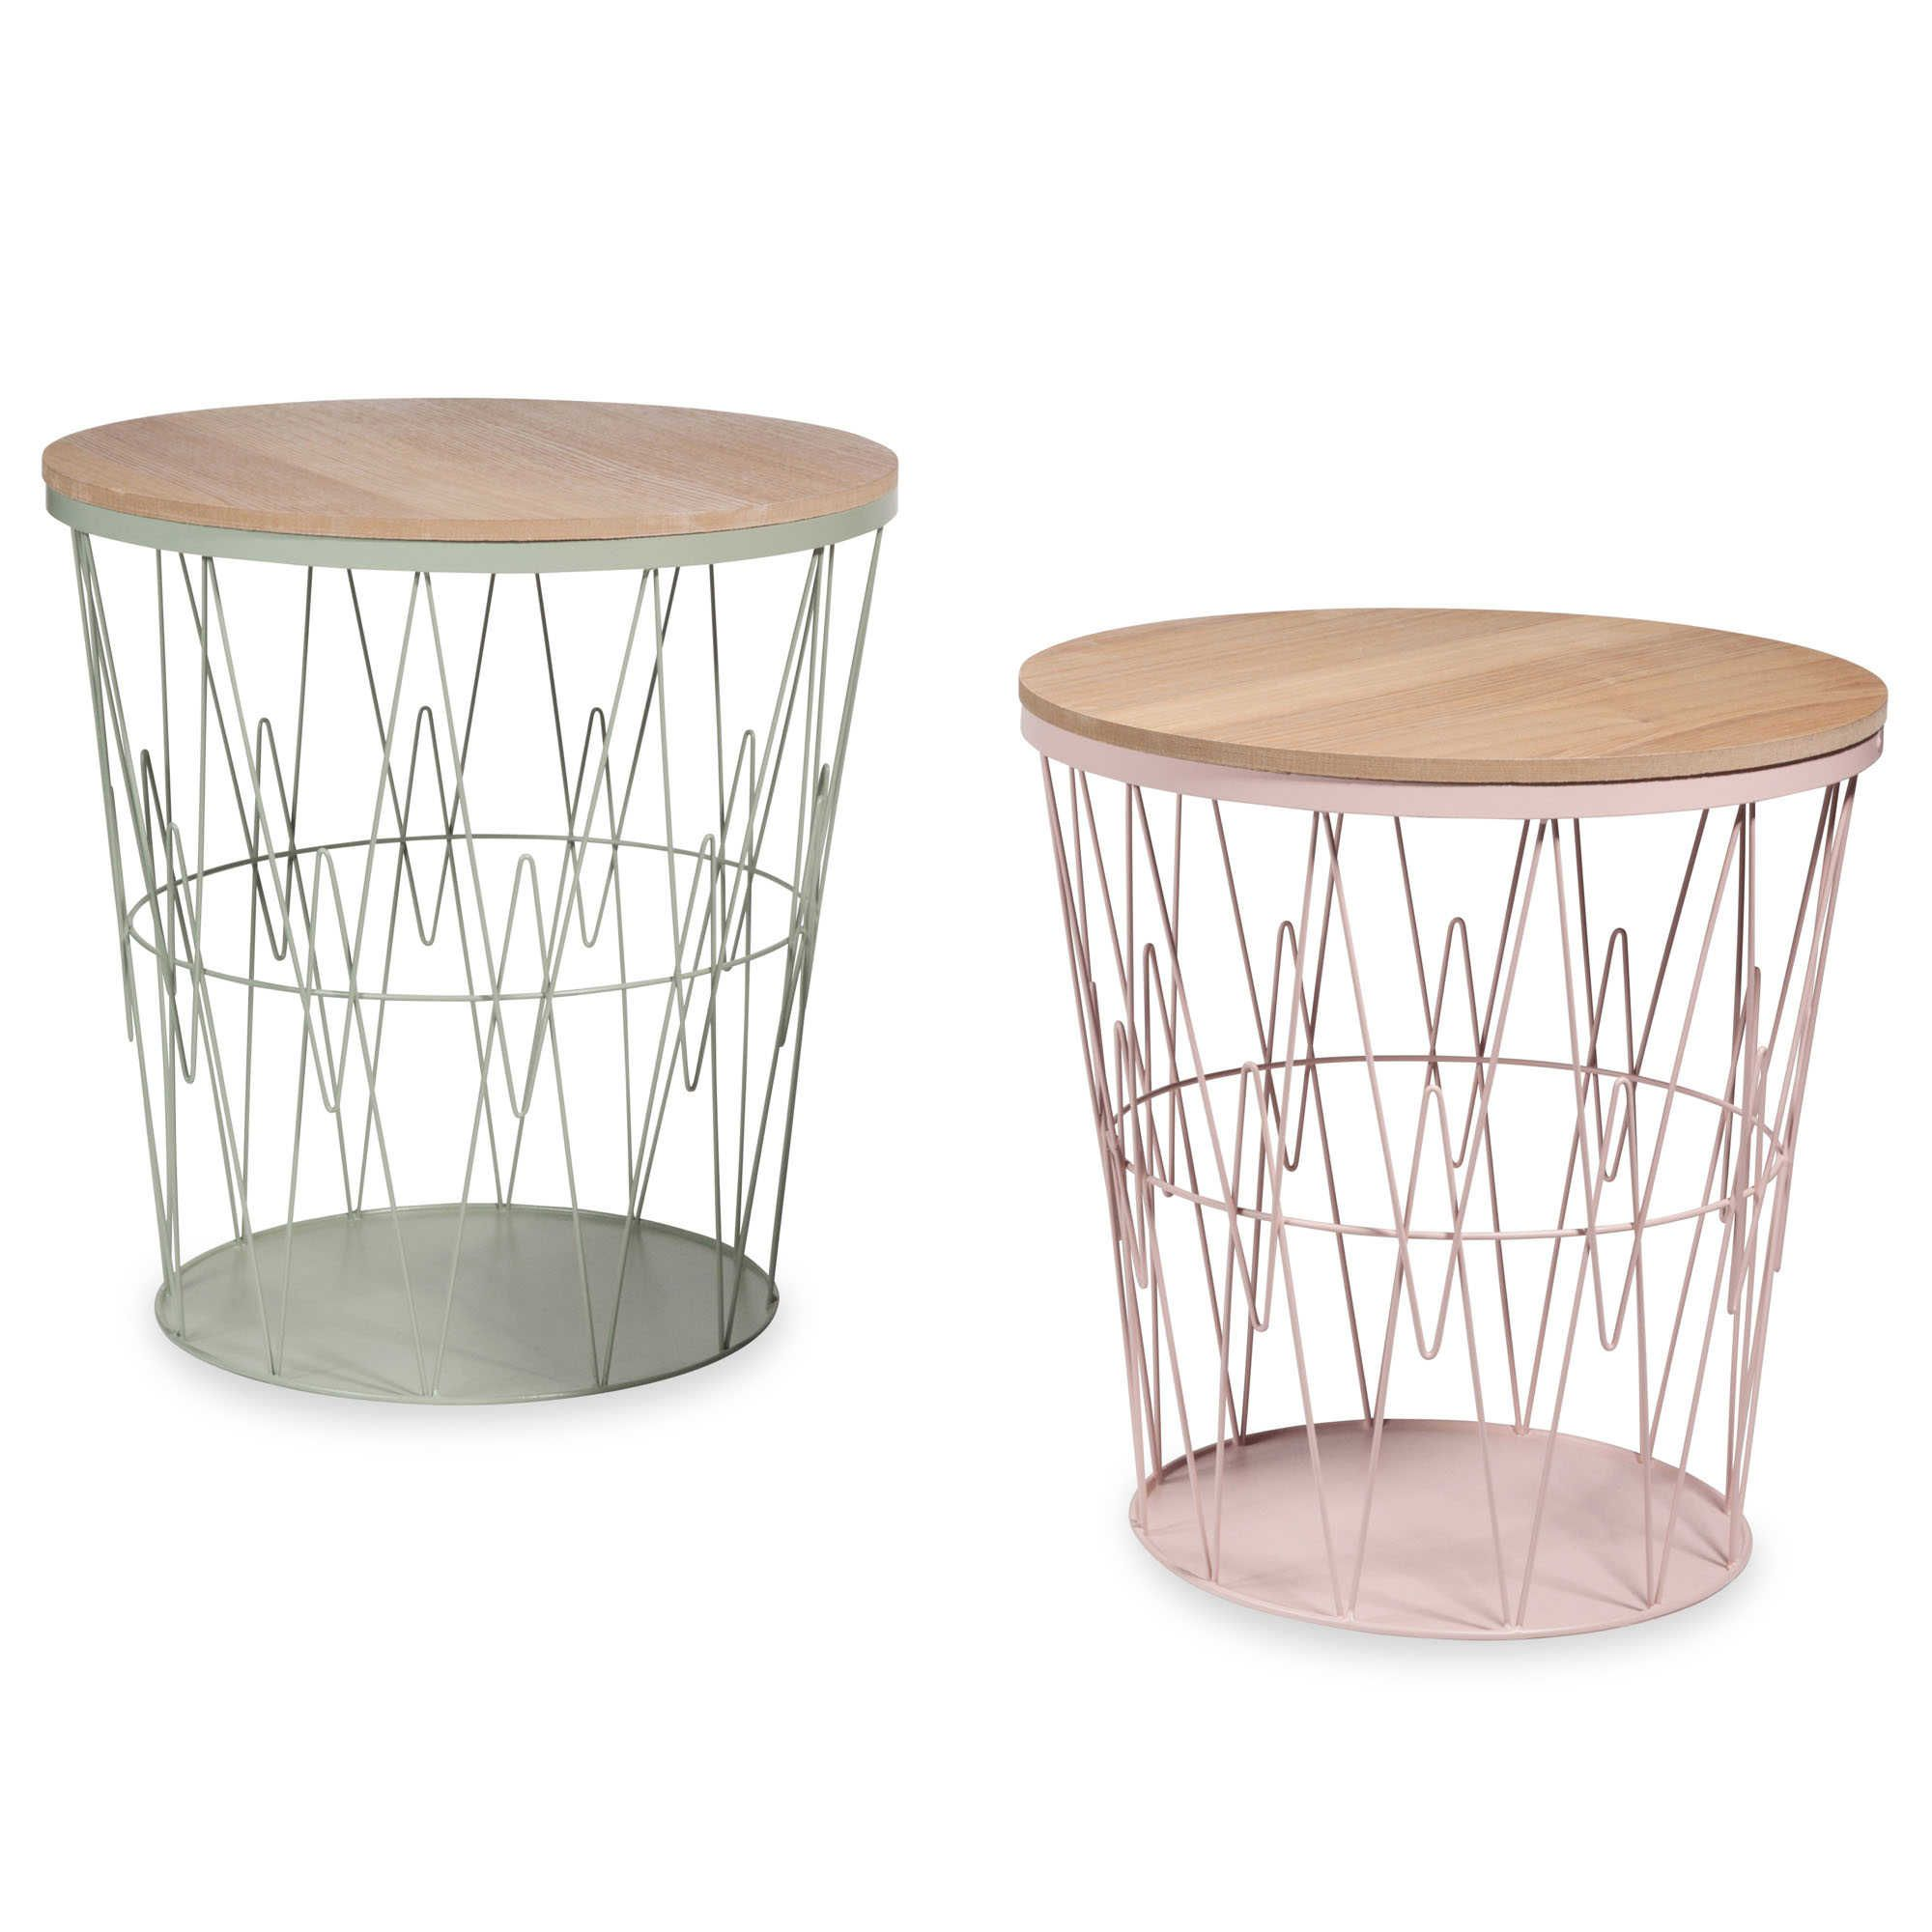 Sinaloa 2 green and pink metal wire side tables homeware sinaloa 2 green and pink metal wire side tables keyboard keysfo Choice Image